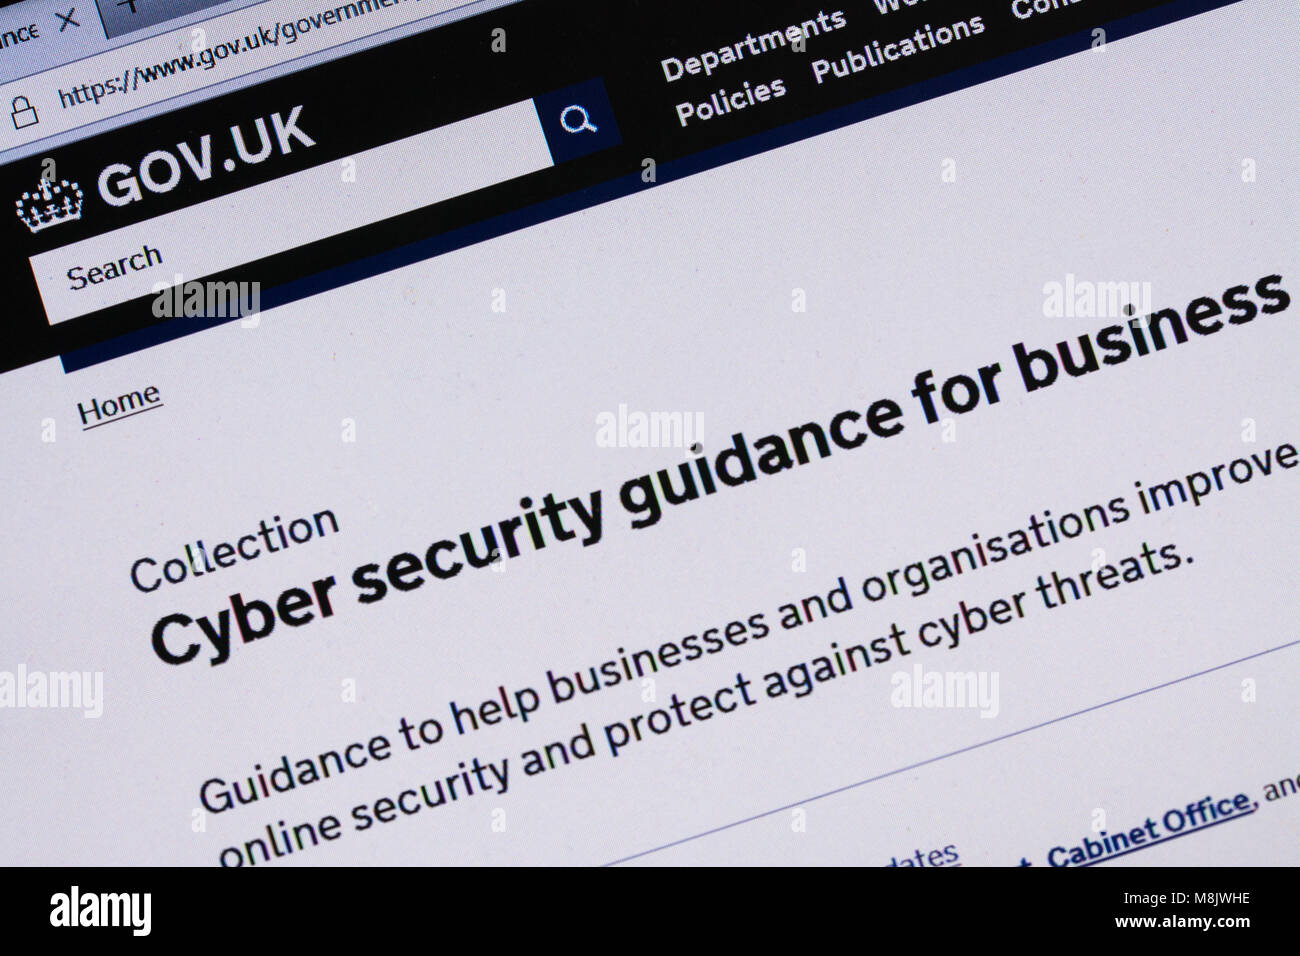 Computer screenshot showing information about cyber security on gov.uk website - Stock Image